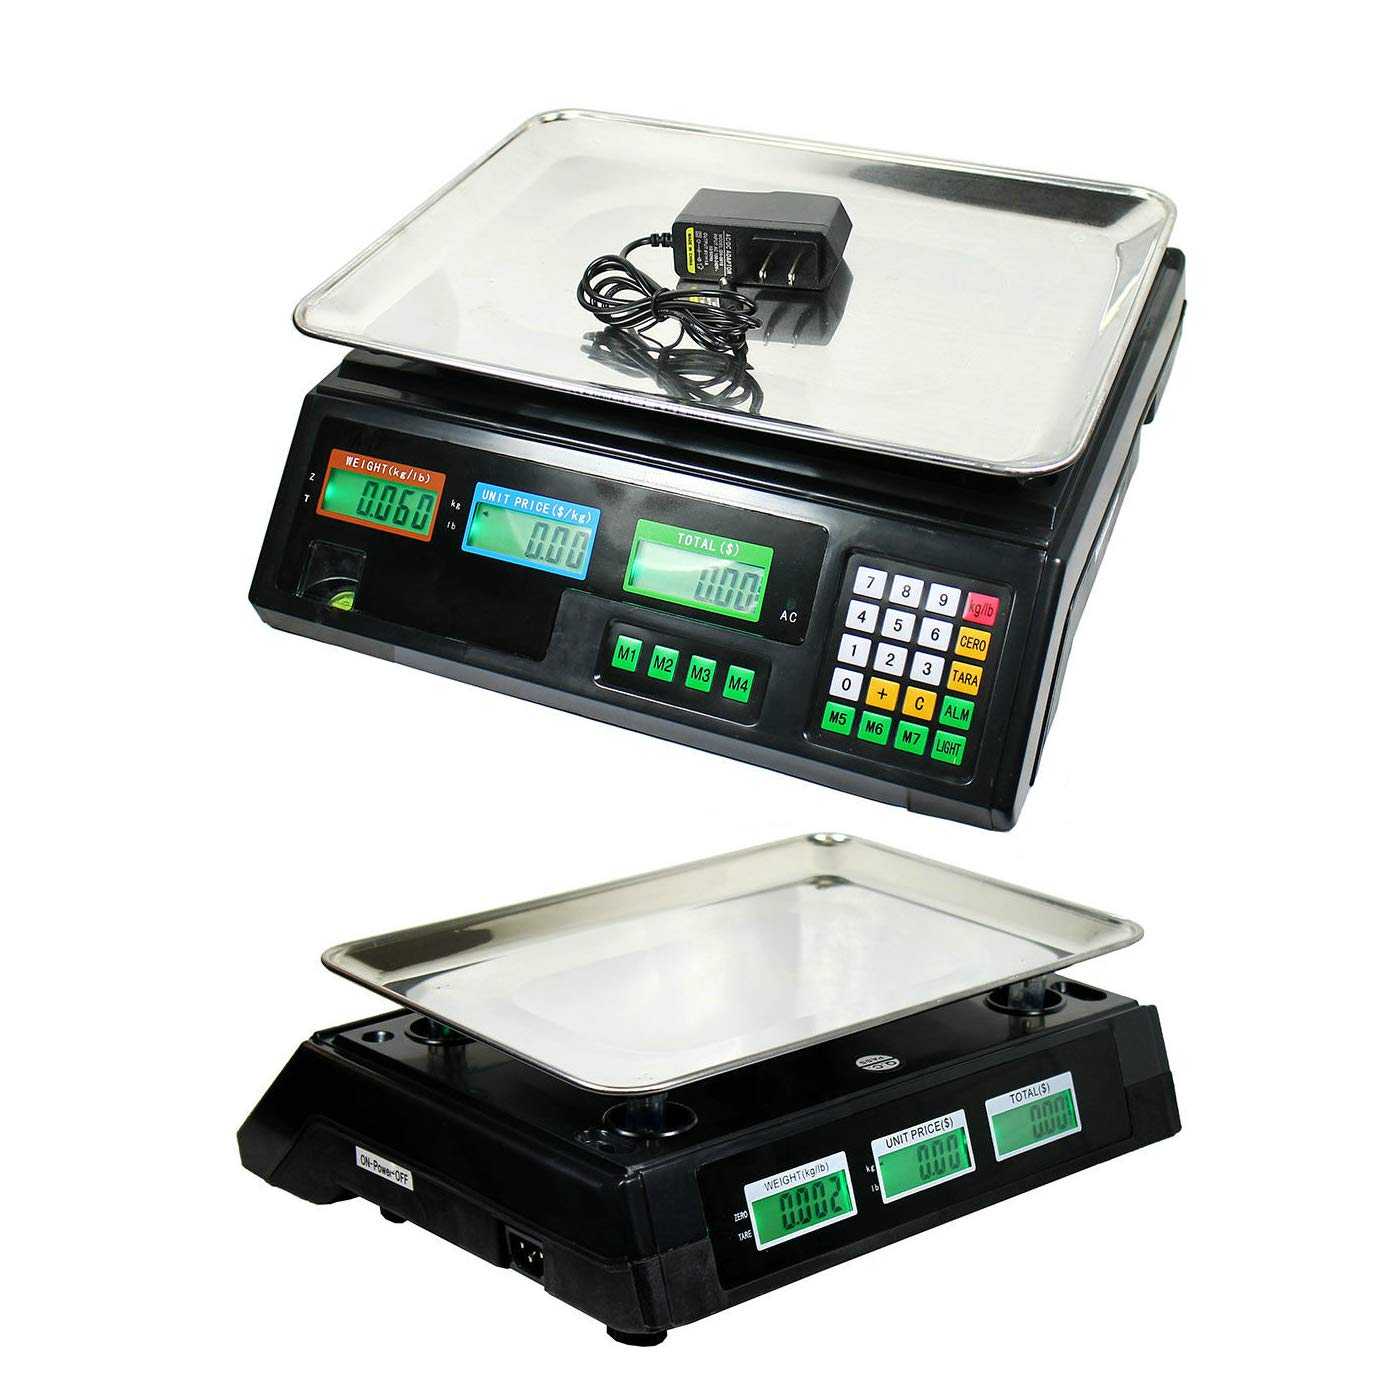 40kg/88lbs Food Deli Scale | Food Meat Price Computing Digital Display Weight Scale Electronic Counter Supermarket Retail Outlet Store